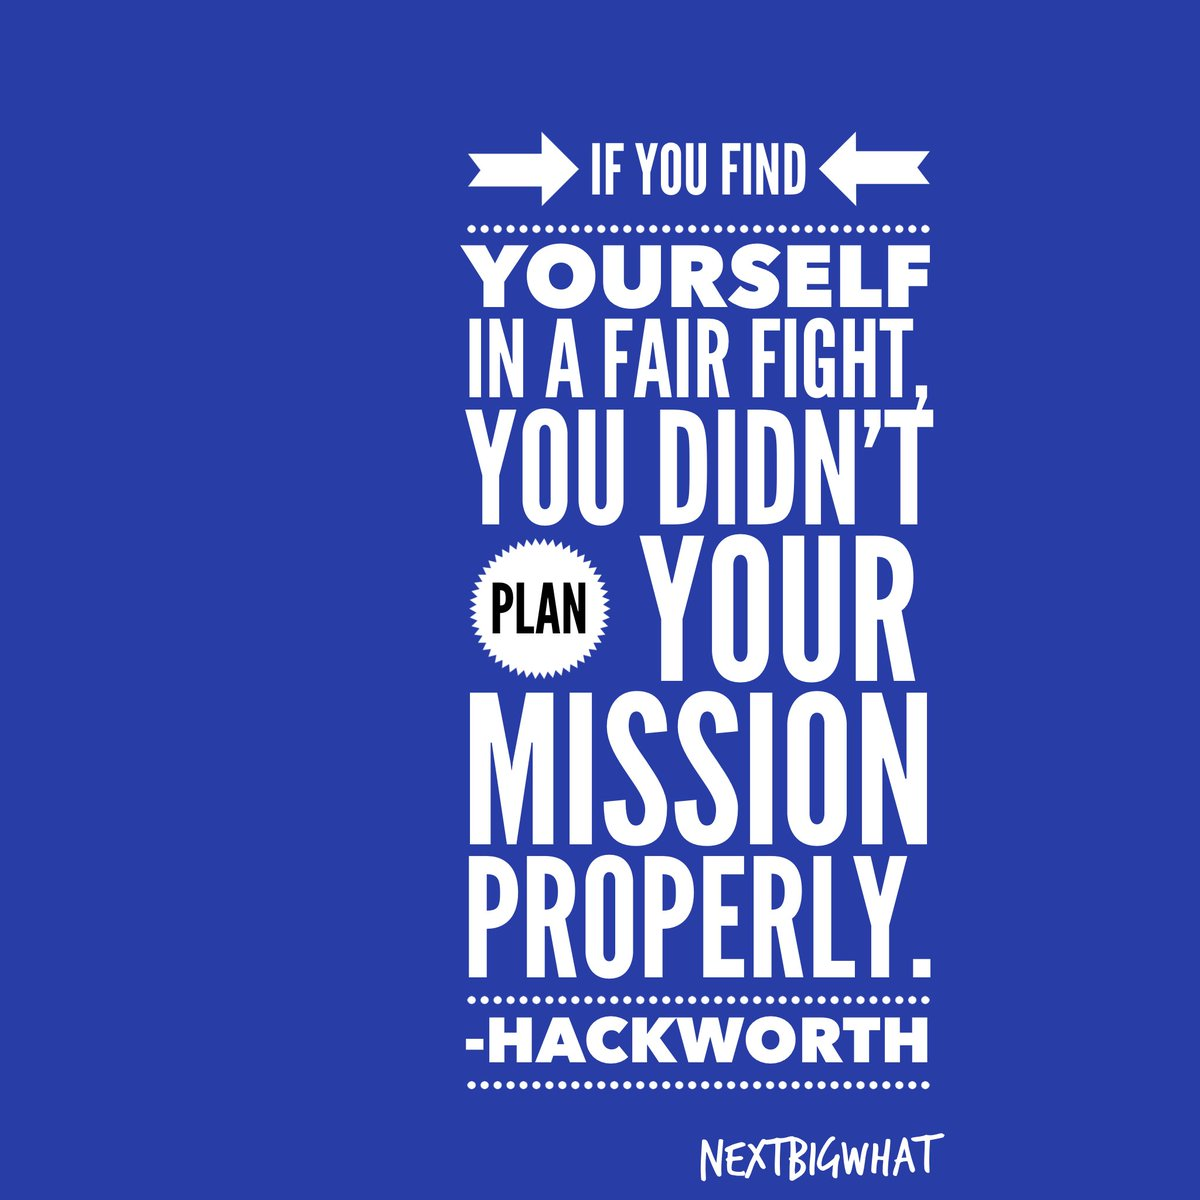 'If you find yourself in a fair fight, you didn't plan your mission properly.' - David Hackworth. #NextBigWhat.